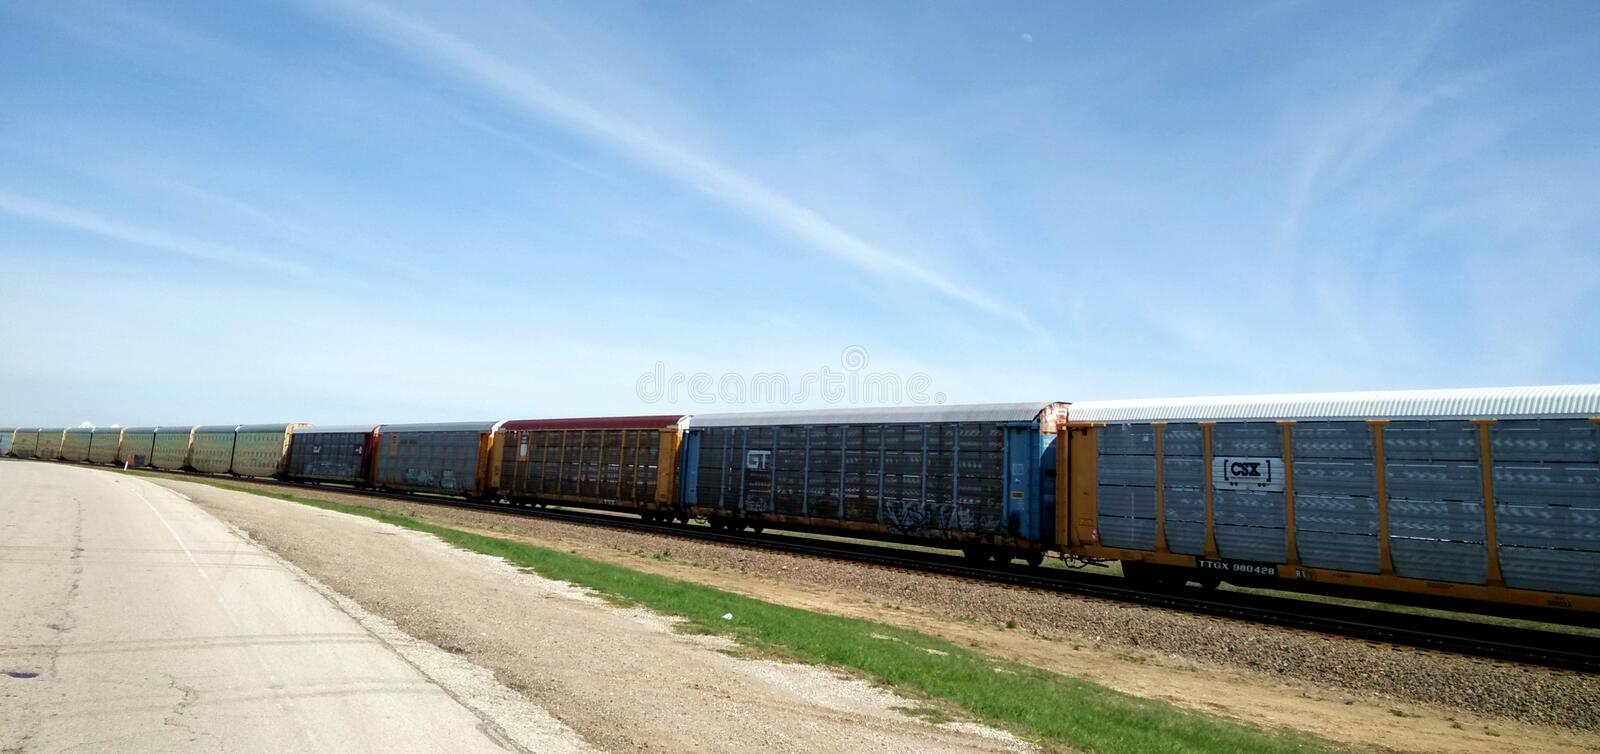 Cargo train on land. Cargo train in the sky, railway wagons in the train royalty free stock images